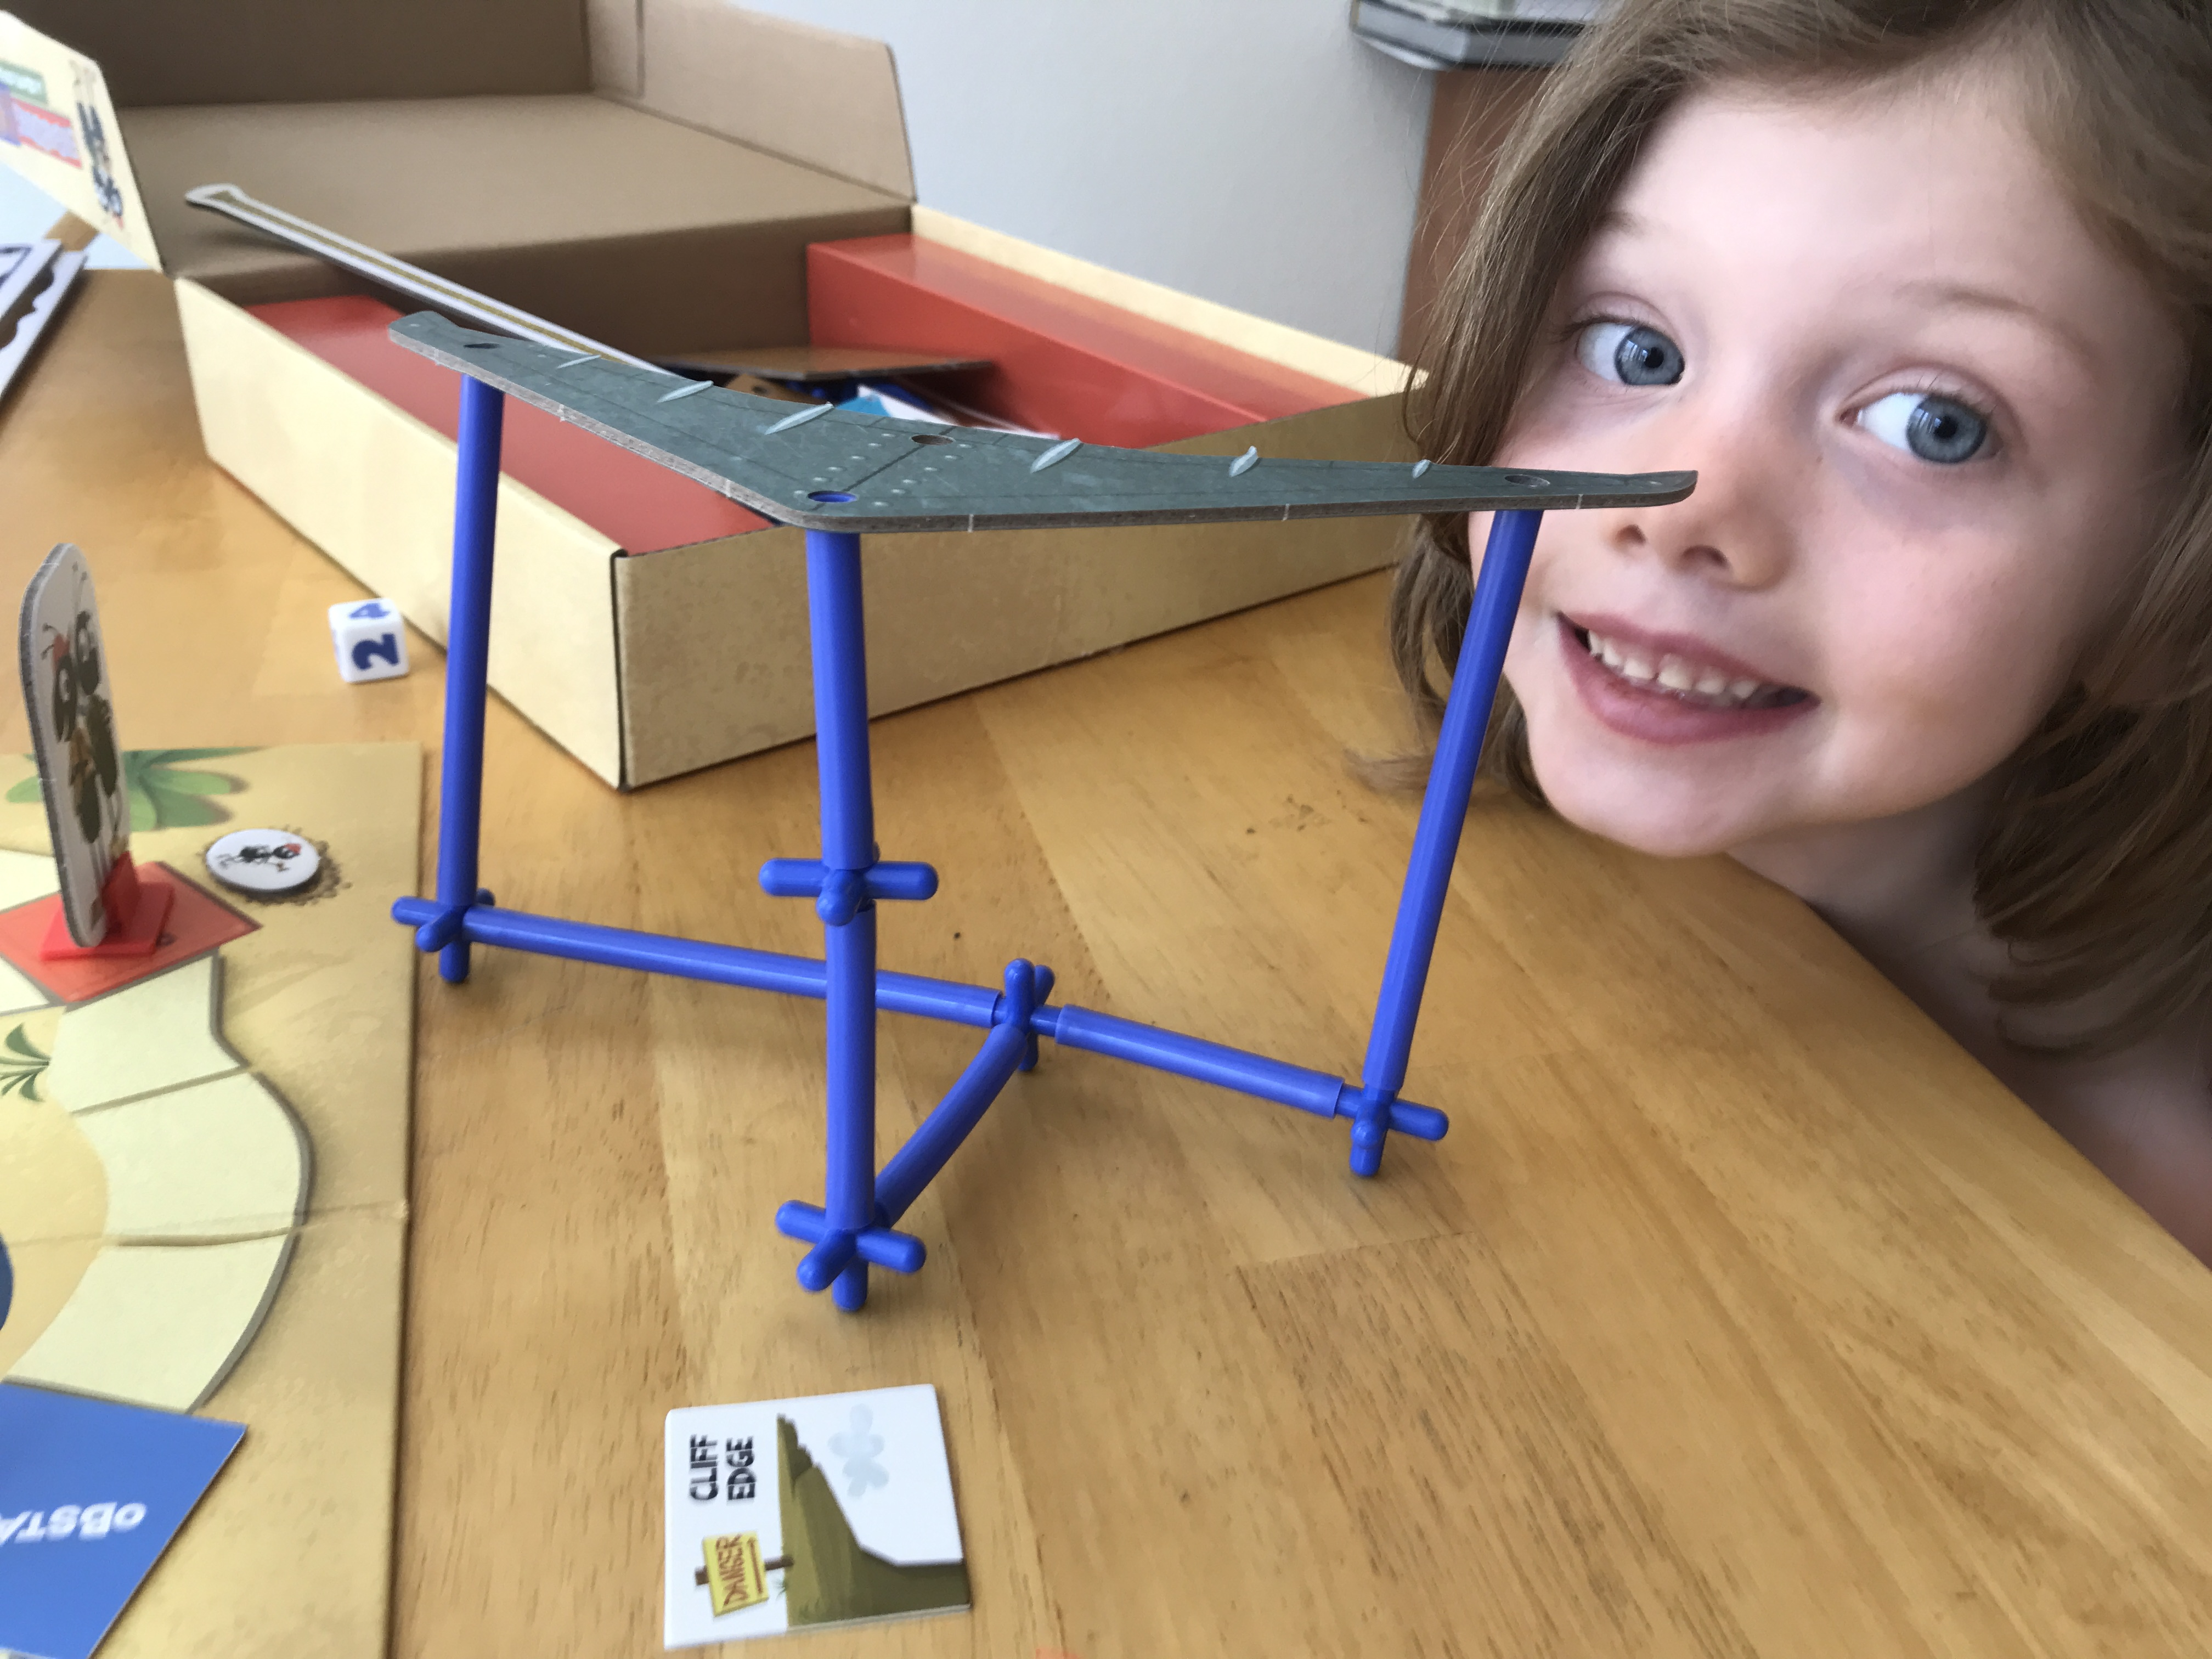 Engineering Ants Game Review - STEM Games for Kids - Gameschooling & Secular Homeschooling @ HomeschoolGameschool.com